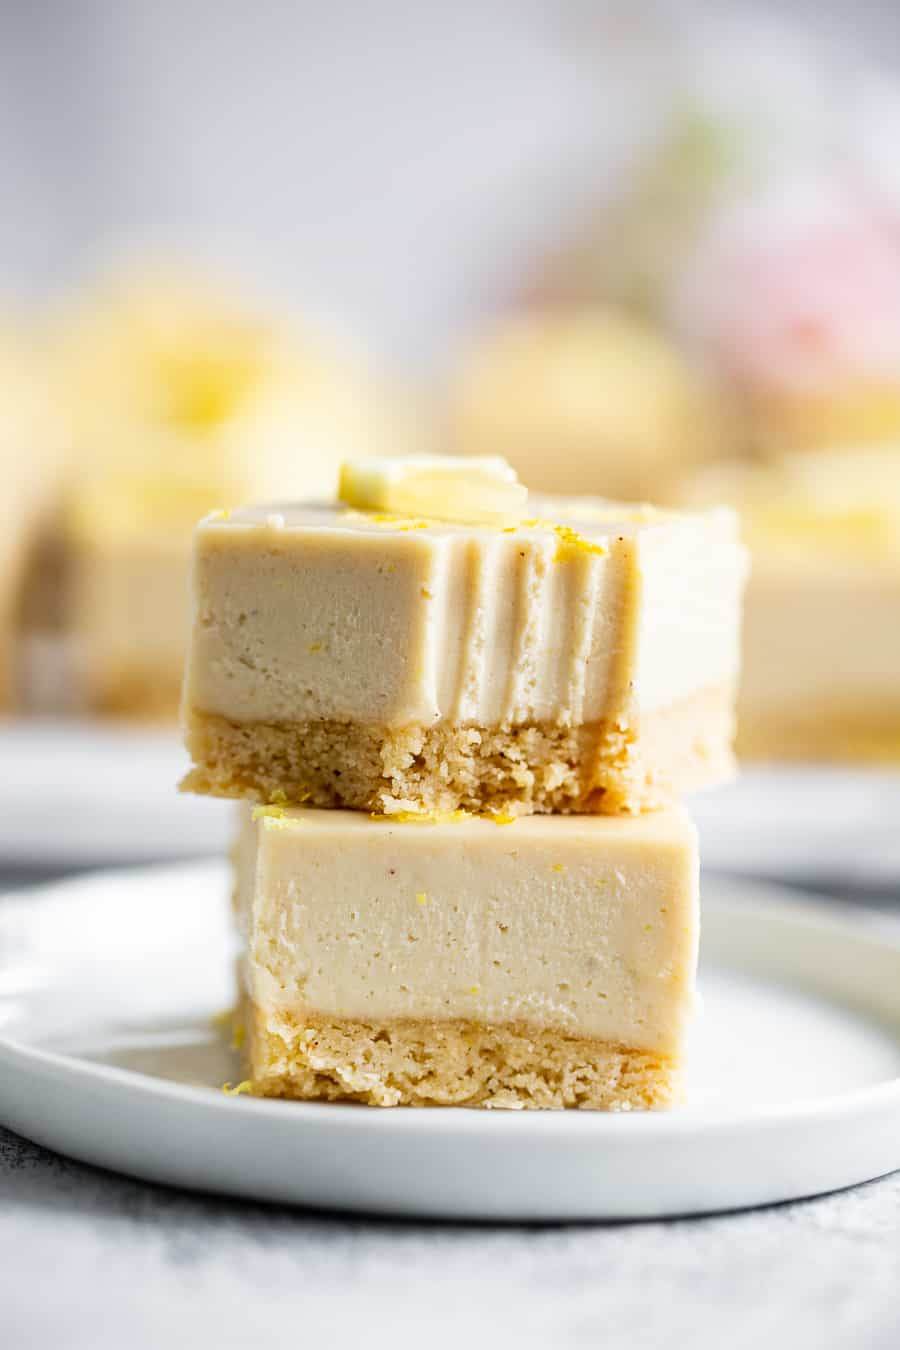 These tart, sweet, paleo lemon bars have a sugar cookie crust and creamy cashew based lemon layer. This healthy spring dessert is totally dairy free, paleo, egg free with a vegan option. Great easy dessert for holidays like Mother's Day and Easter. I used affordable paleo baking ingredients from ALDI to make all the flavors shine. #paleo #cleaneating #vegan #AD